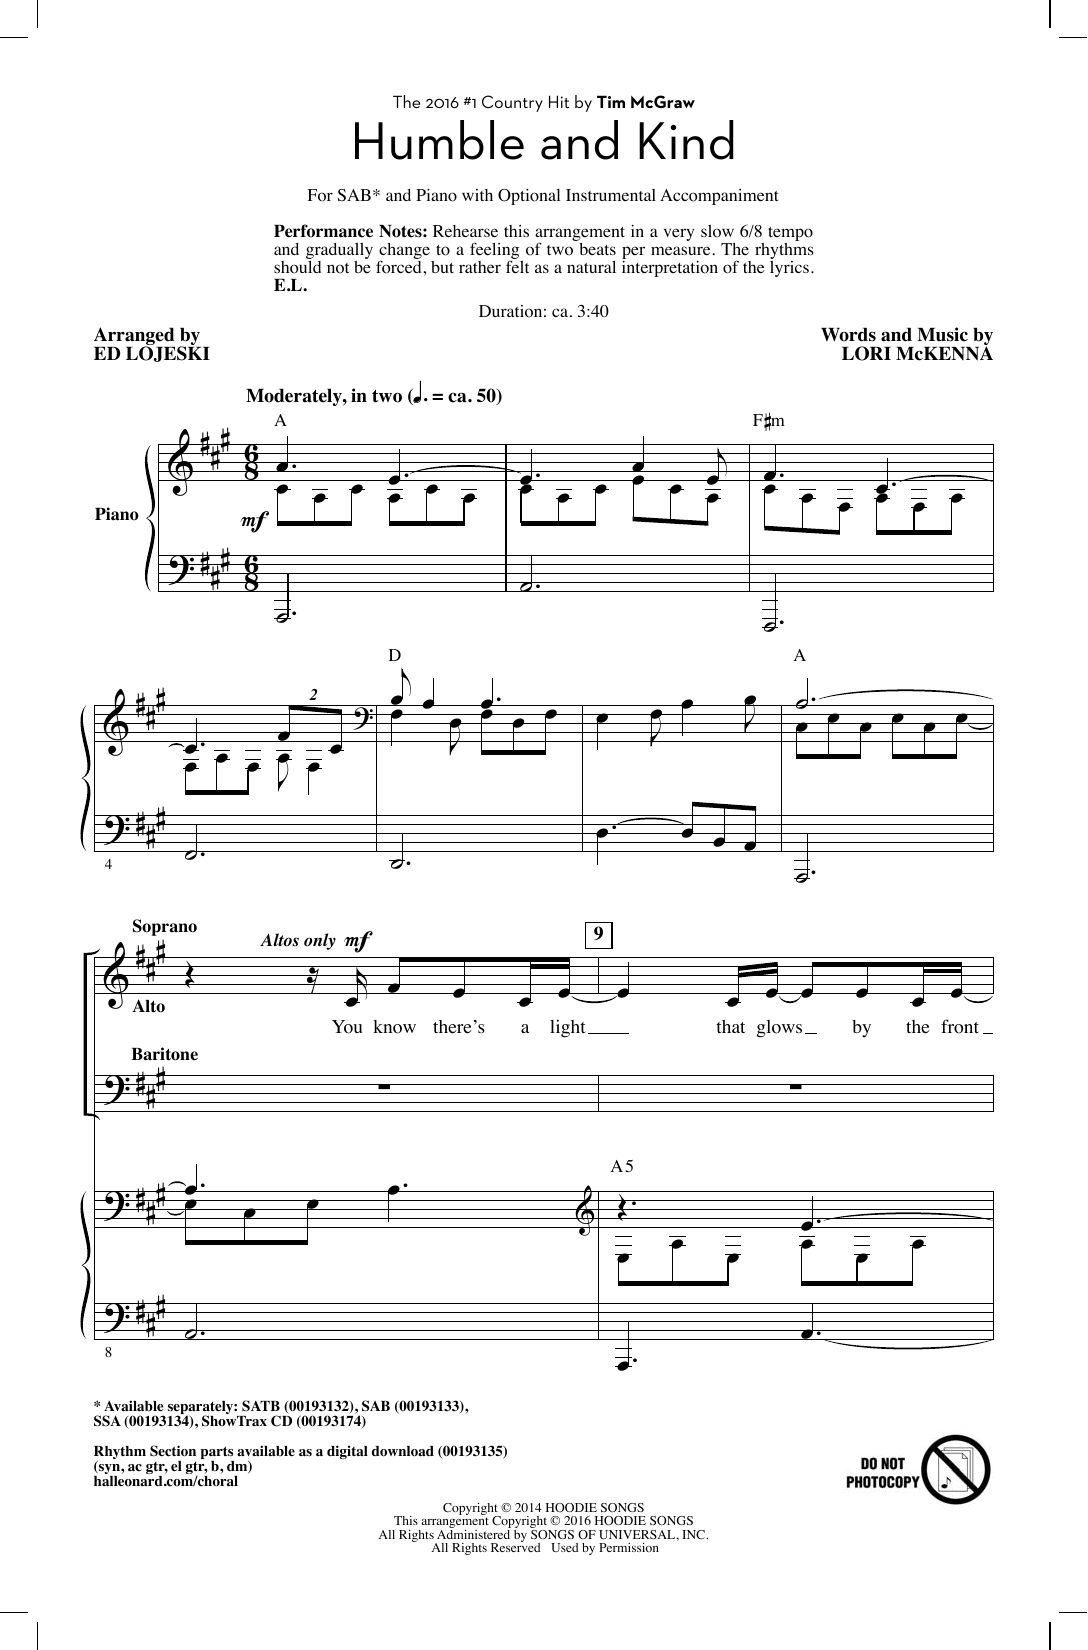 Tim McGraw Humble And Kind (arr. Ed Lojeski) sheet music notes and chords. Download Printable PDF.